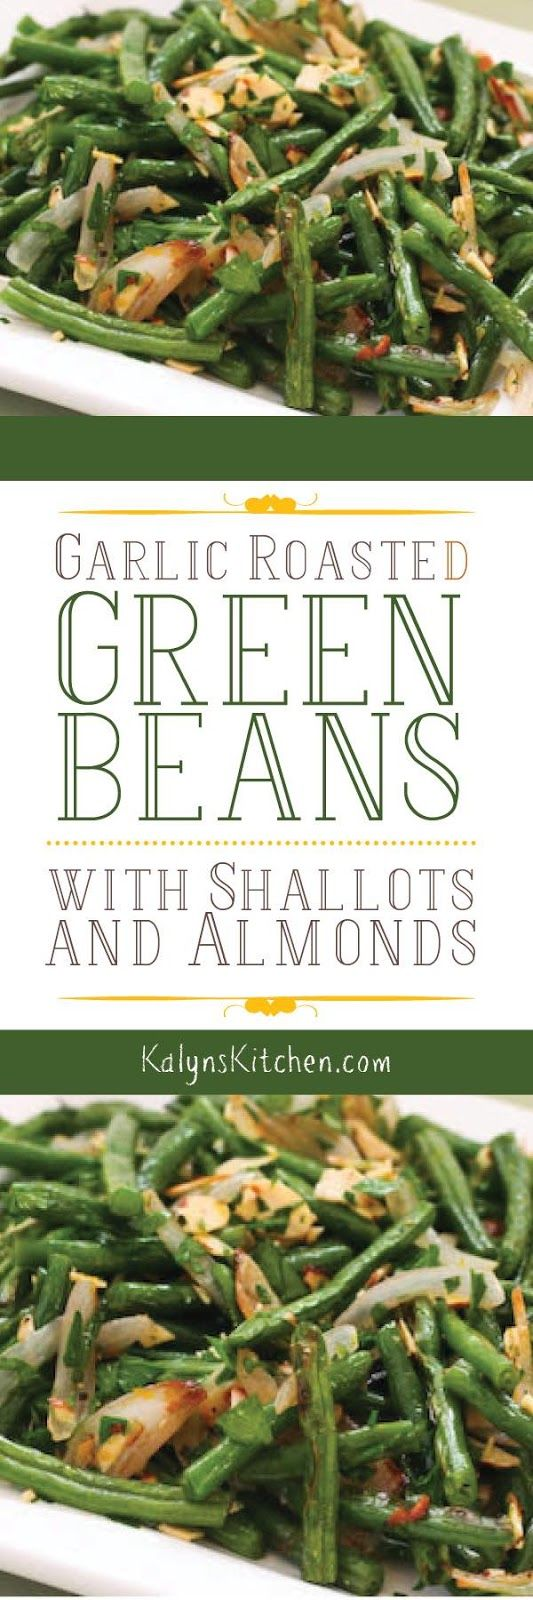 Garlic-Roasted Green Beans with Shallots and Almonds are an amazing side dish that's low-carb, Keto, gluten-free, dairy-free, Paleo, Whole 30, and Vegan! [found on KalynsKitchen.com] #RoastedGreenBeans #GreenBeans #LowCarb #Keto #GlutenFree #DairyFree #Paleo #Whole30 #Vegan